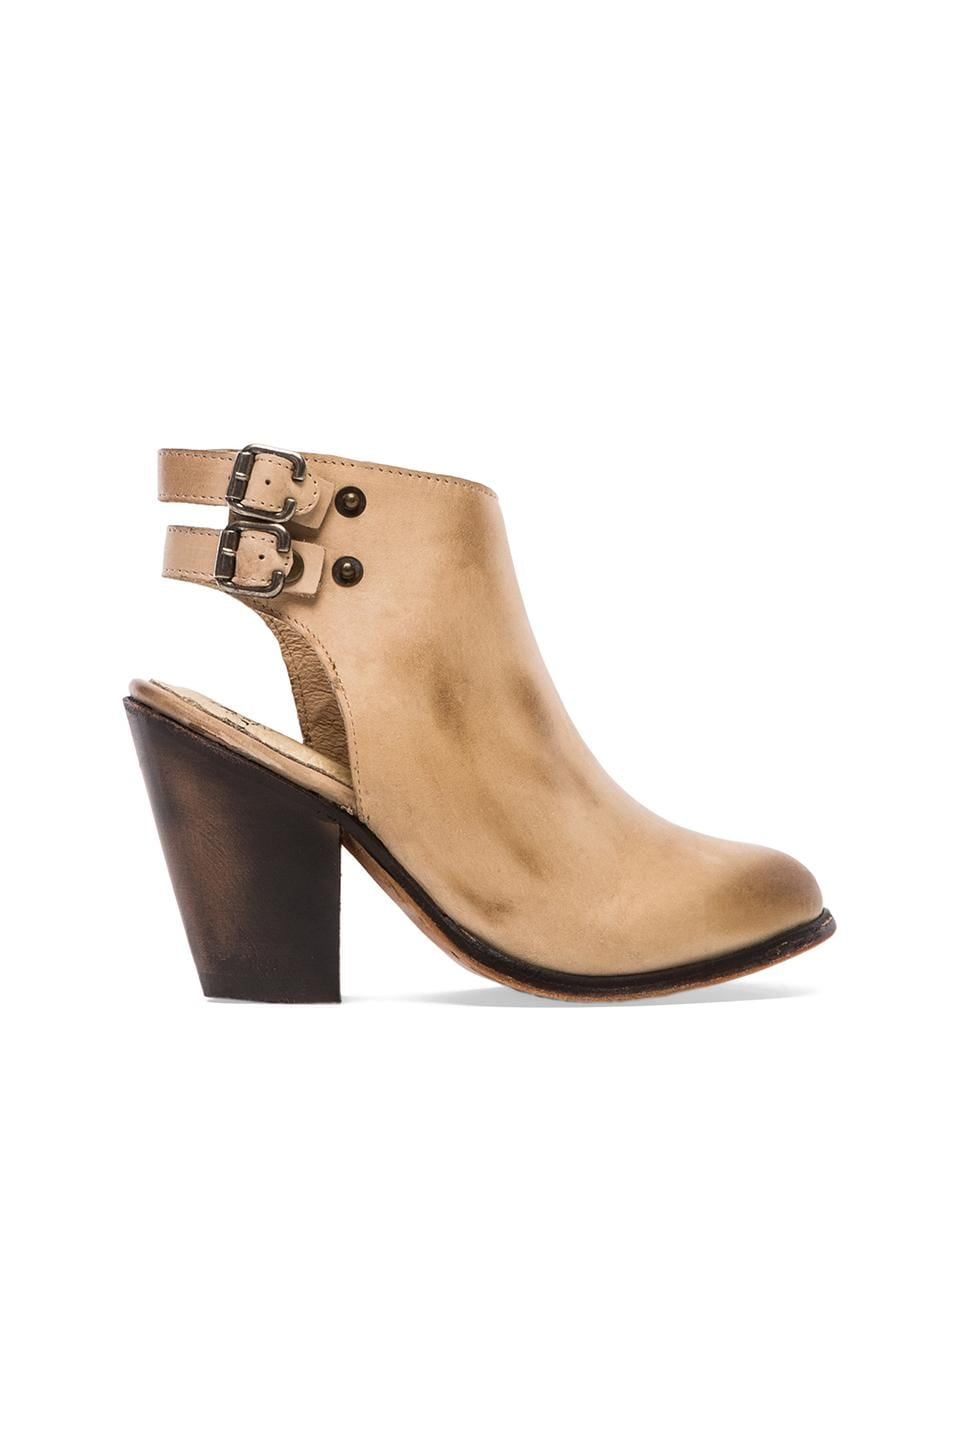 Freebird by Steven Smoke Bootie in Beige